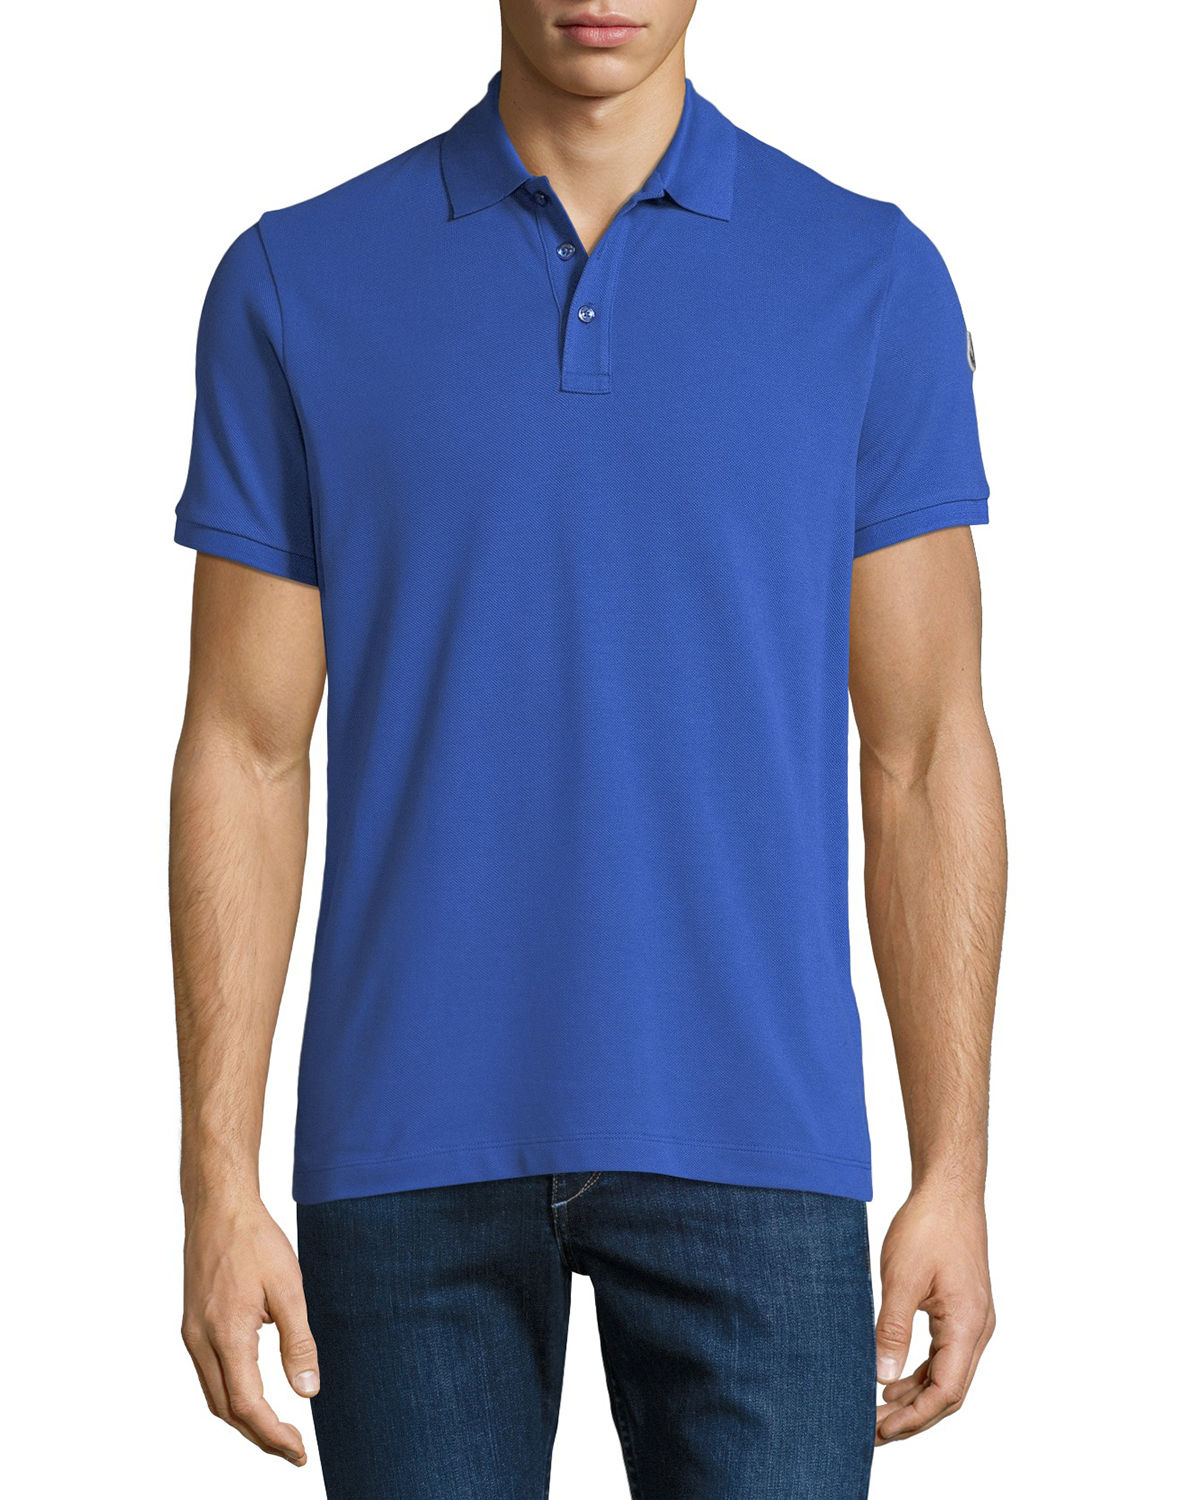 Men's Basic Polo Shirt